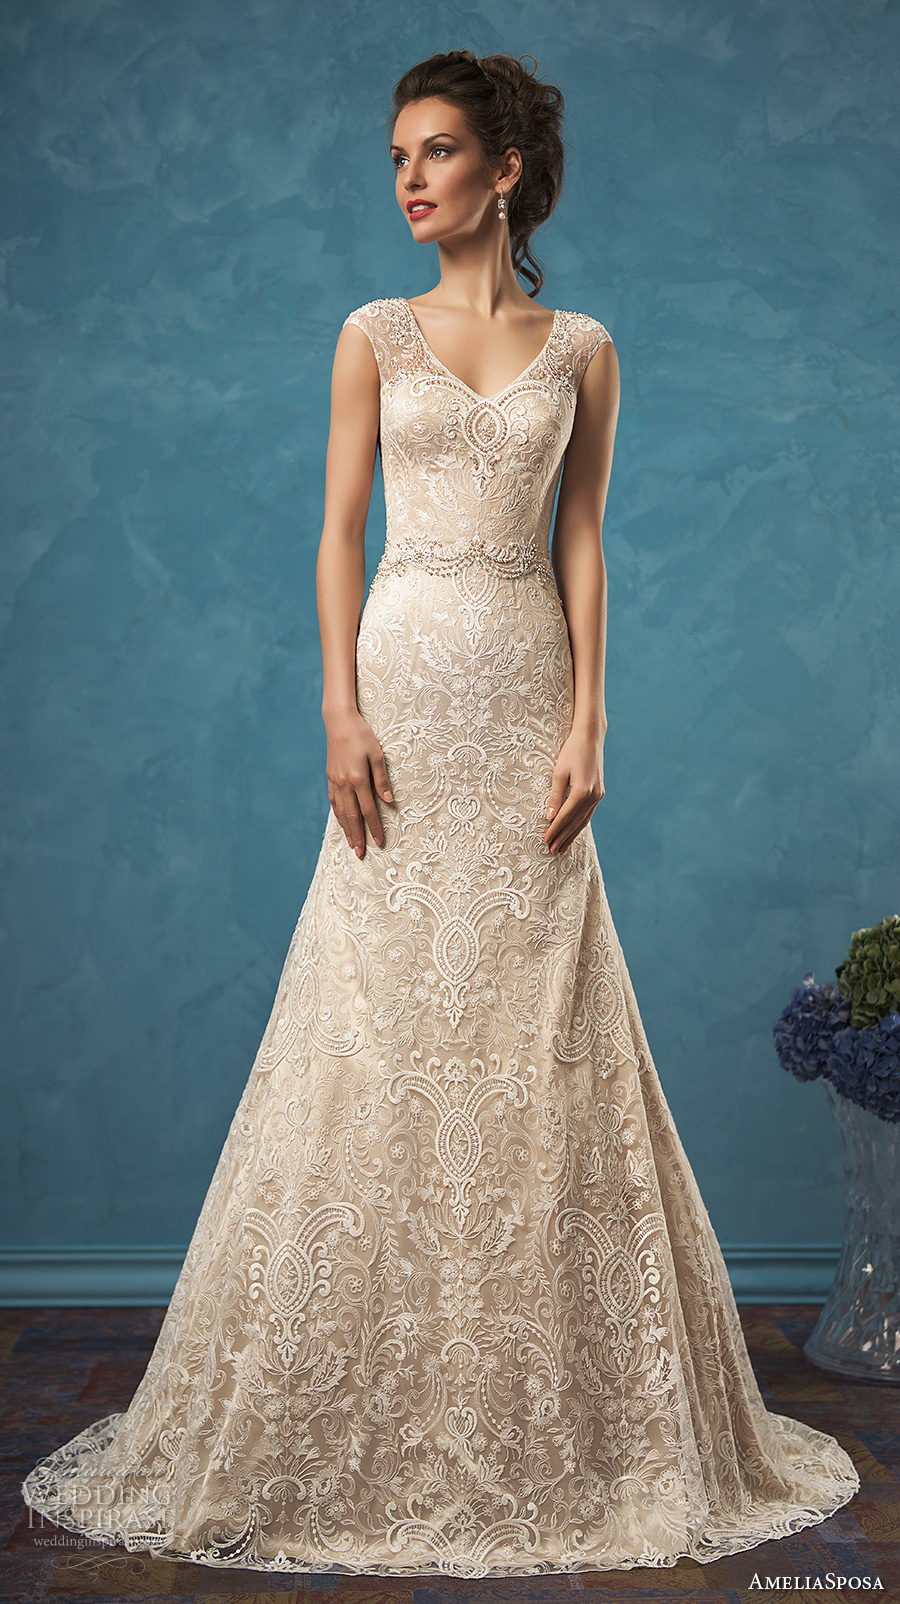 Amelia Sposa 2017 Wedding Dresses | Wedding Inspirasi